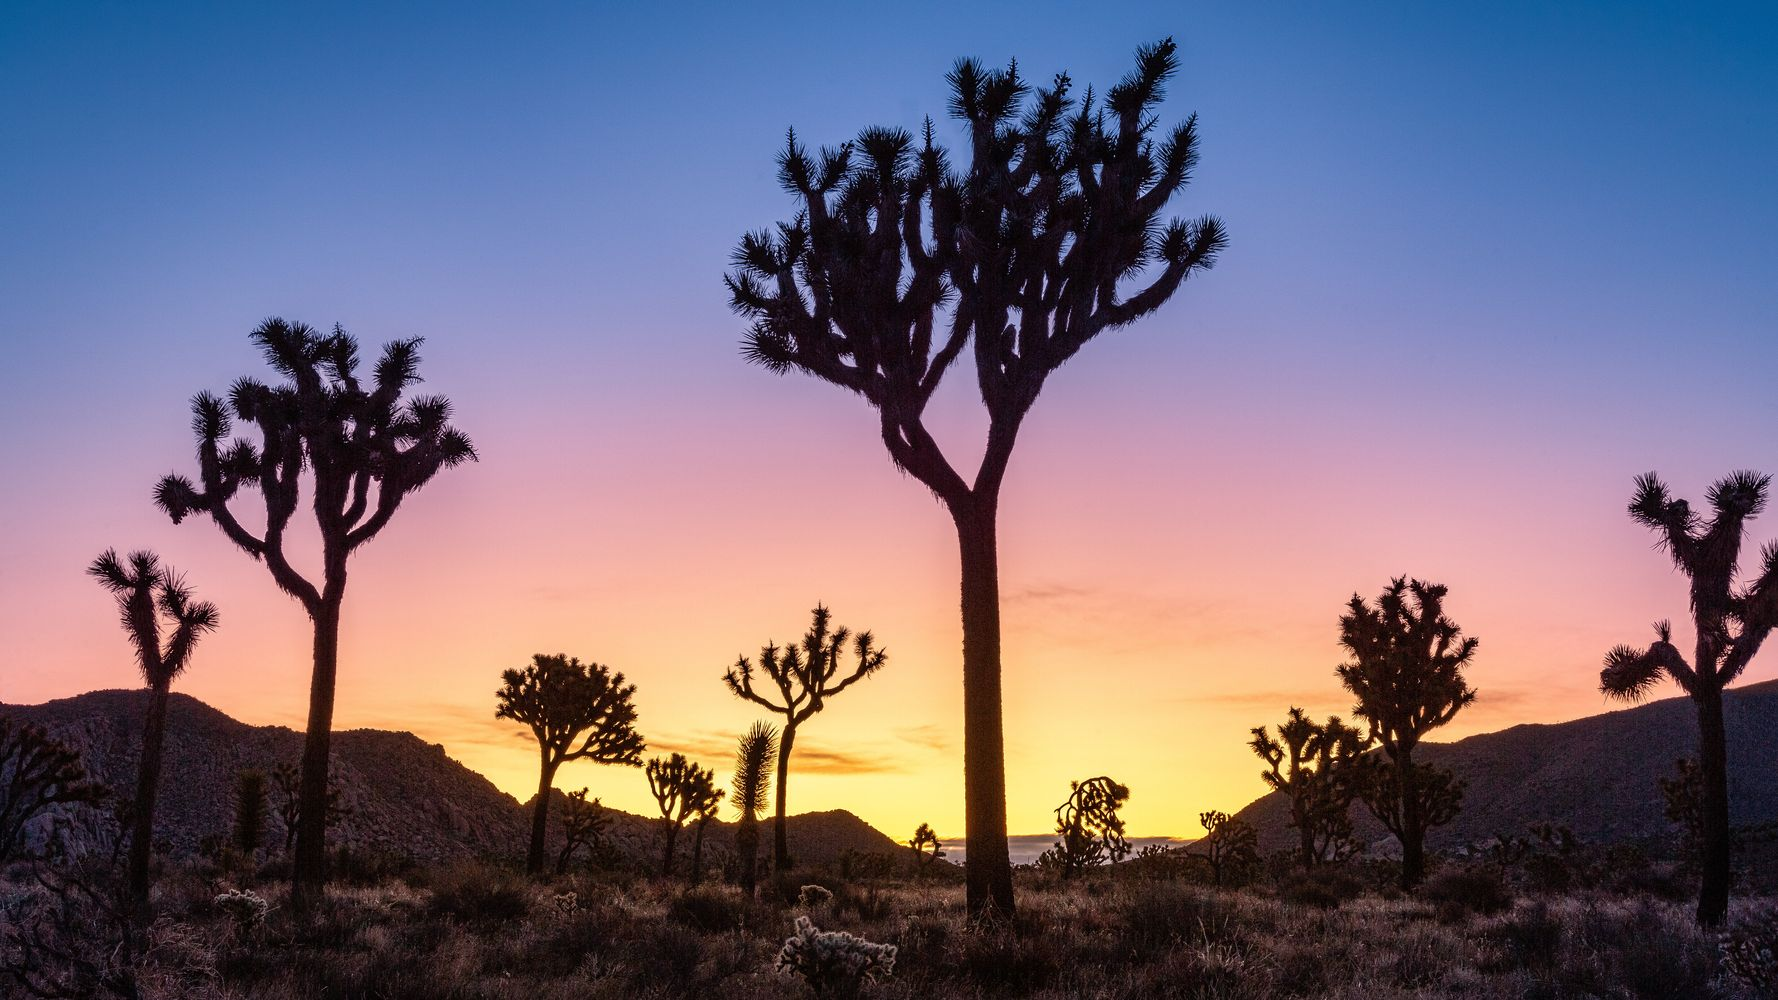 Trump Administration Broke The Law In Refusing To Protect Joshua Trees, Court Rules